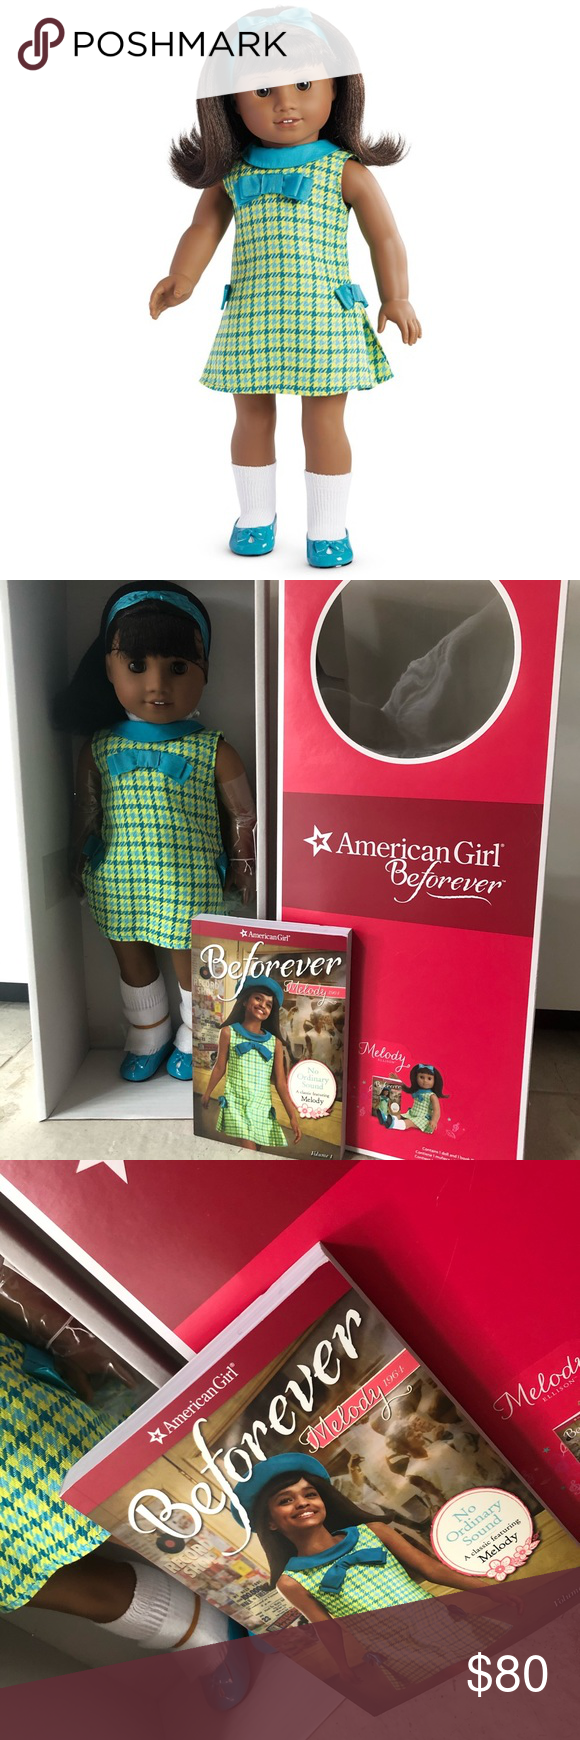 American Girl Doll Melody Brand new in box. American Girl Other